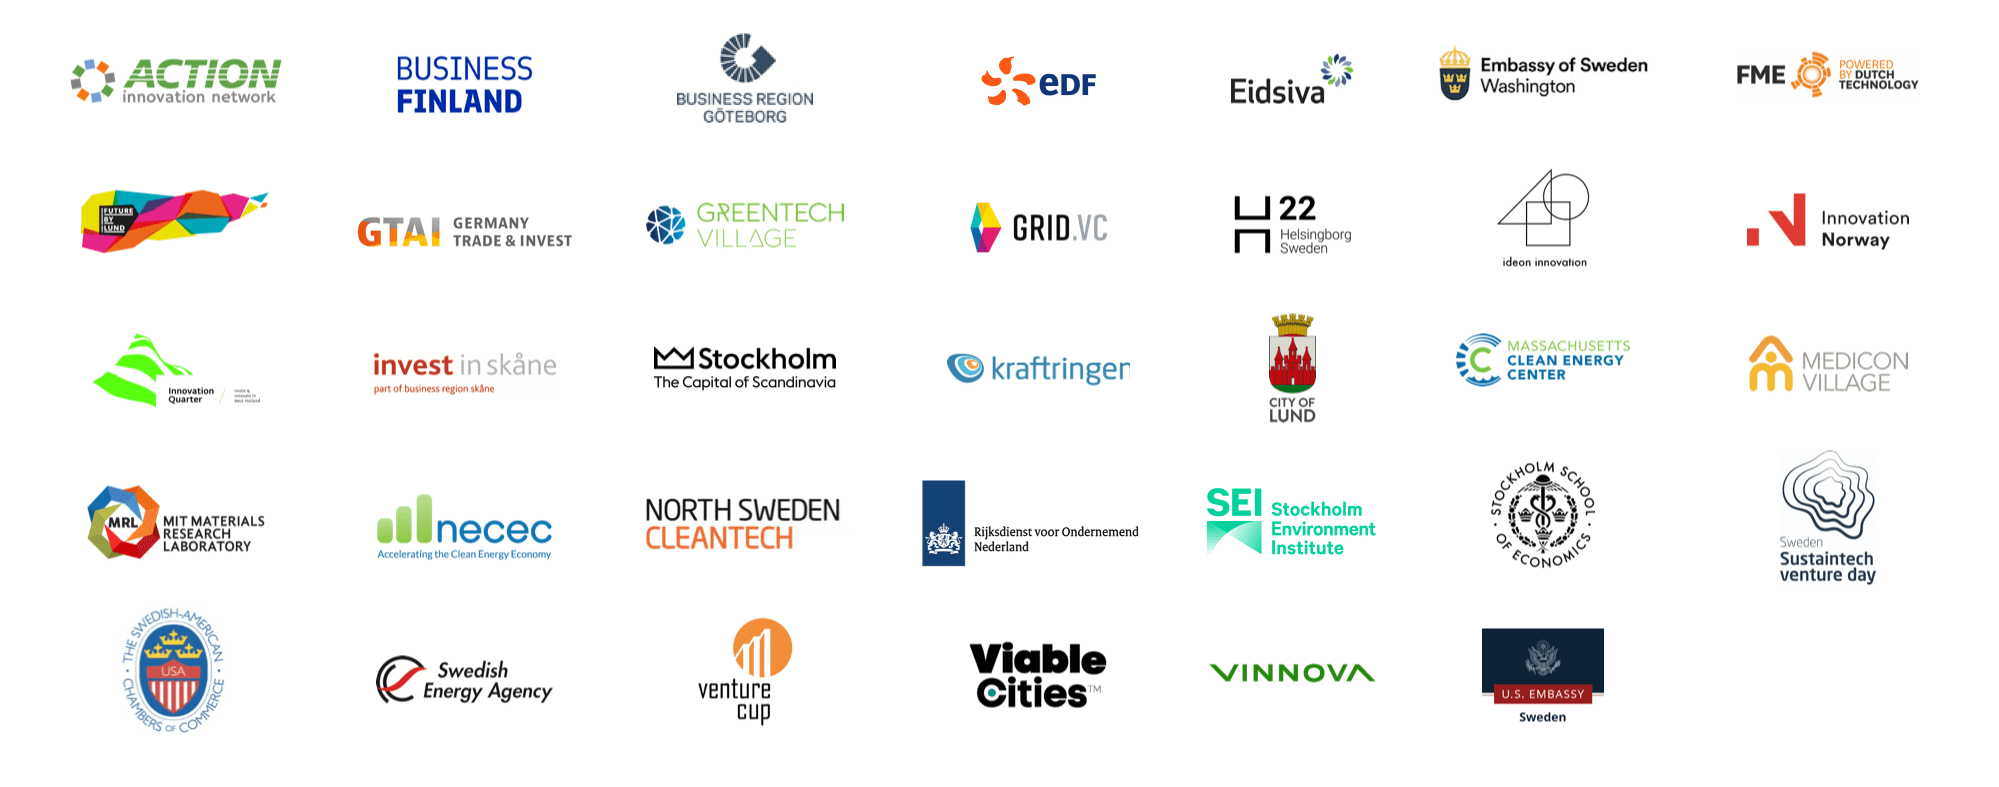 OUR ECOSYSTEM PARTNERS